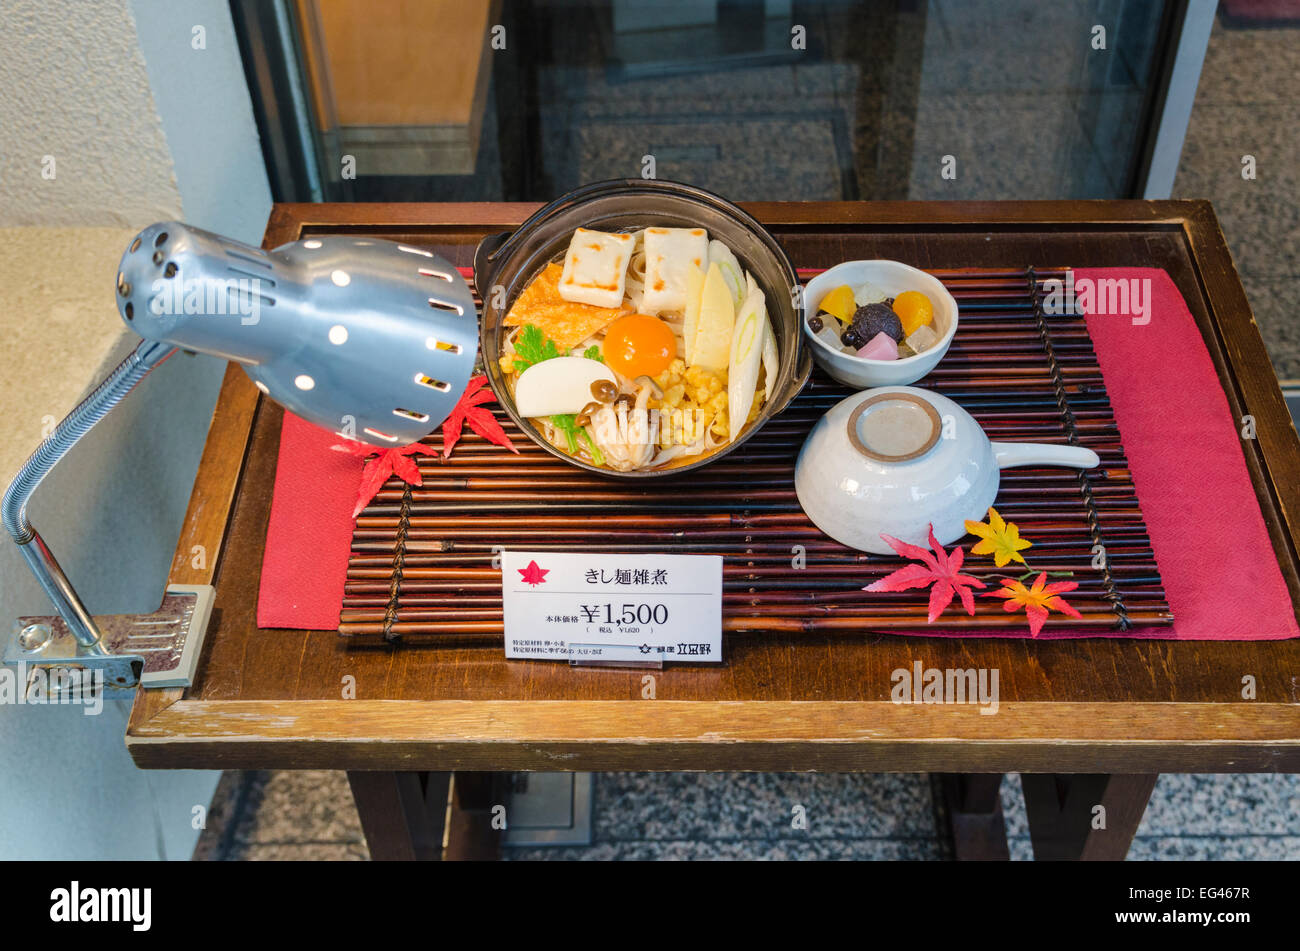 Fake food replica meal in a Ginza Restaurant doorway, Ginza, Tokyo, Japan - Stock Image